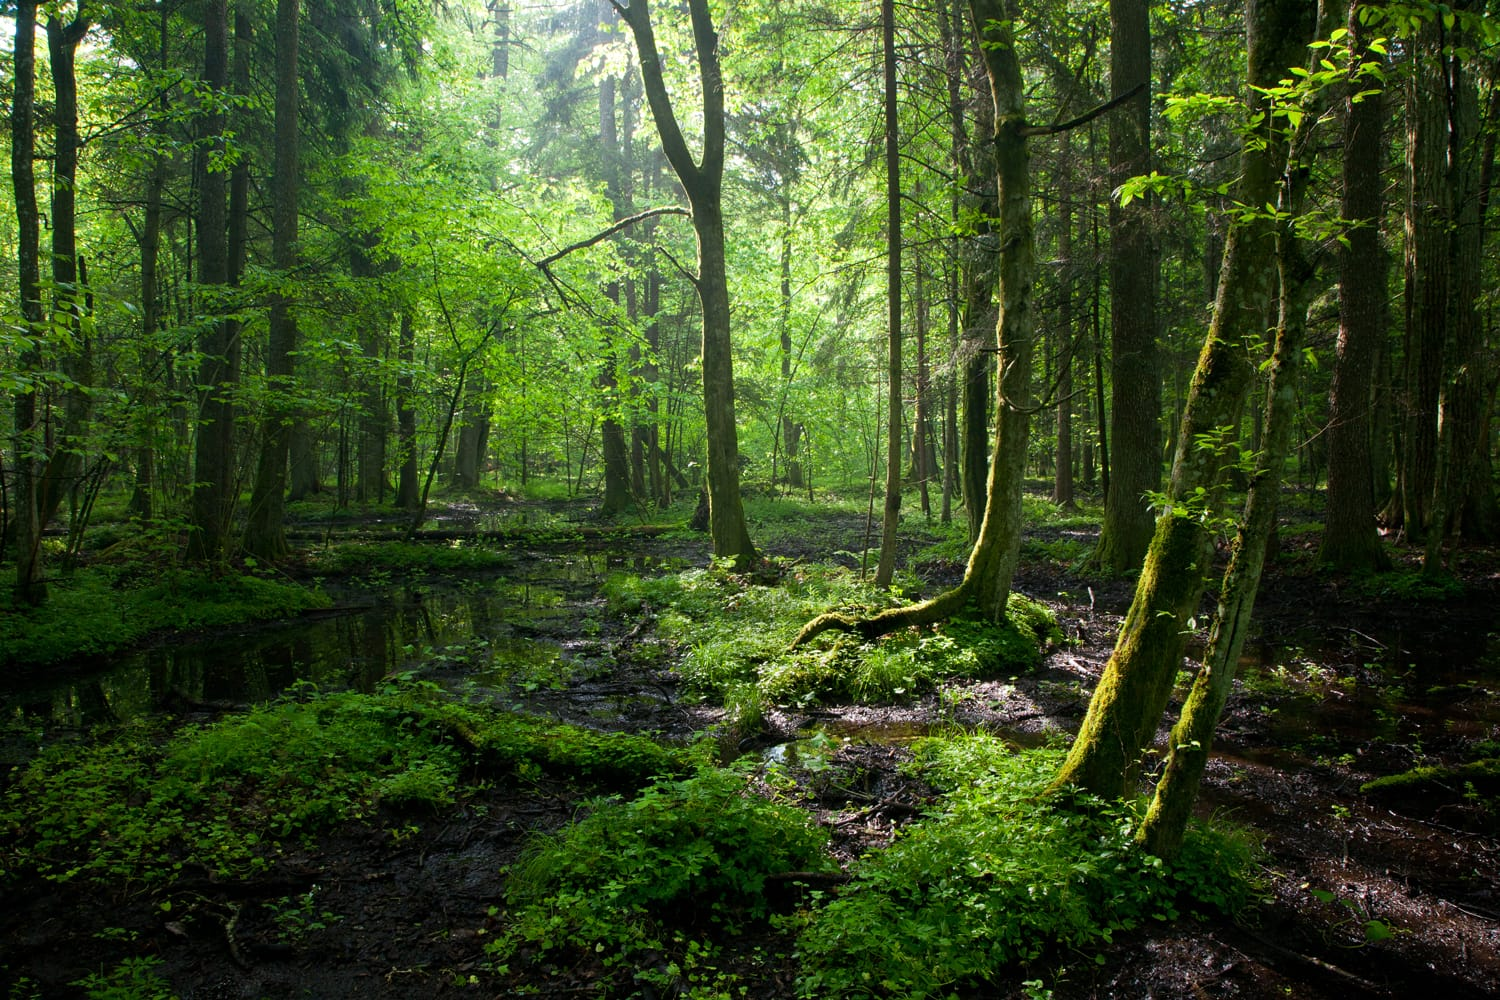 Bialowieza Forest in Poland and Belarus